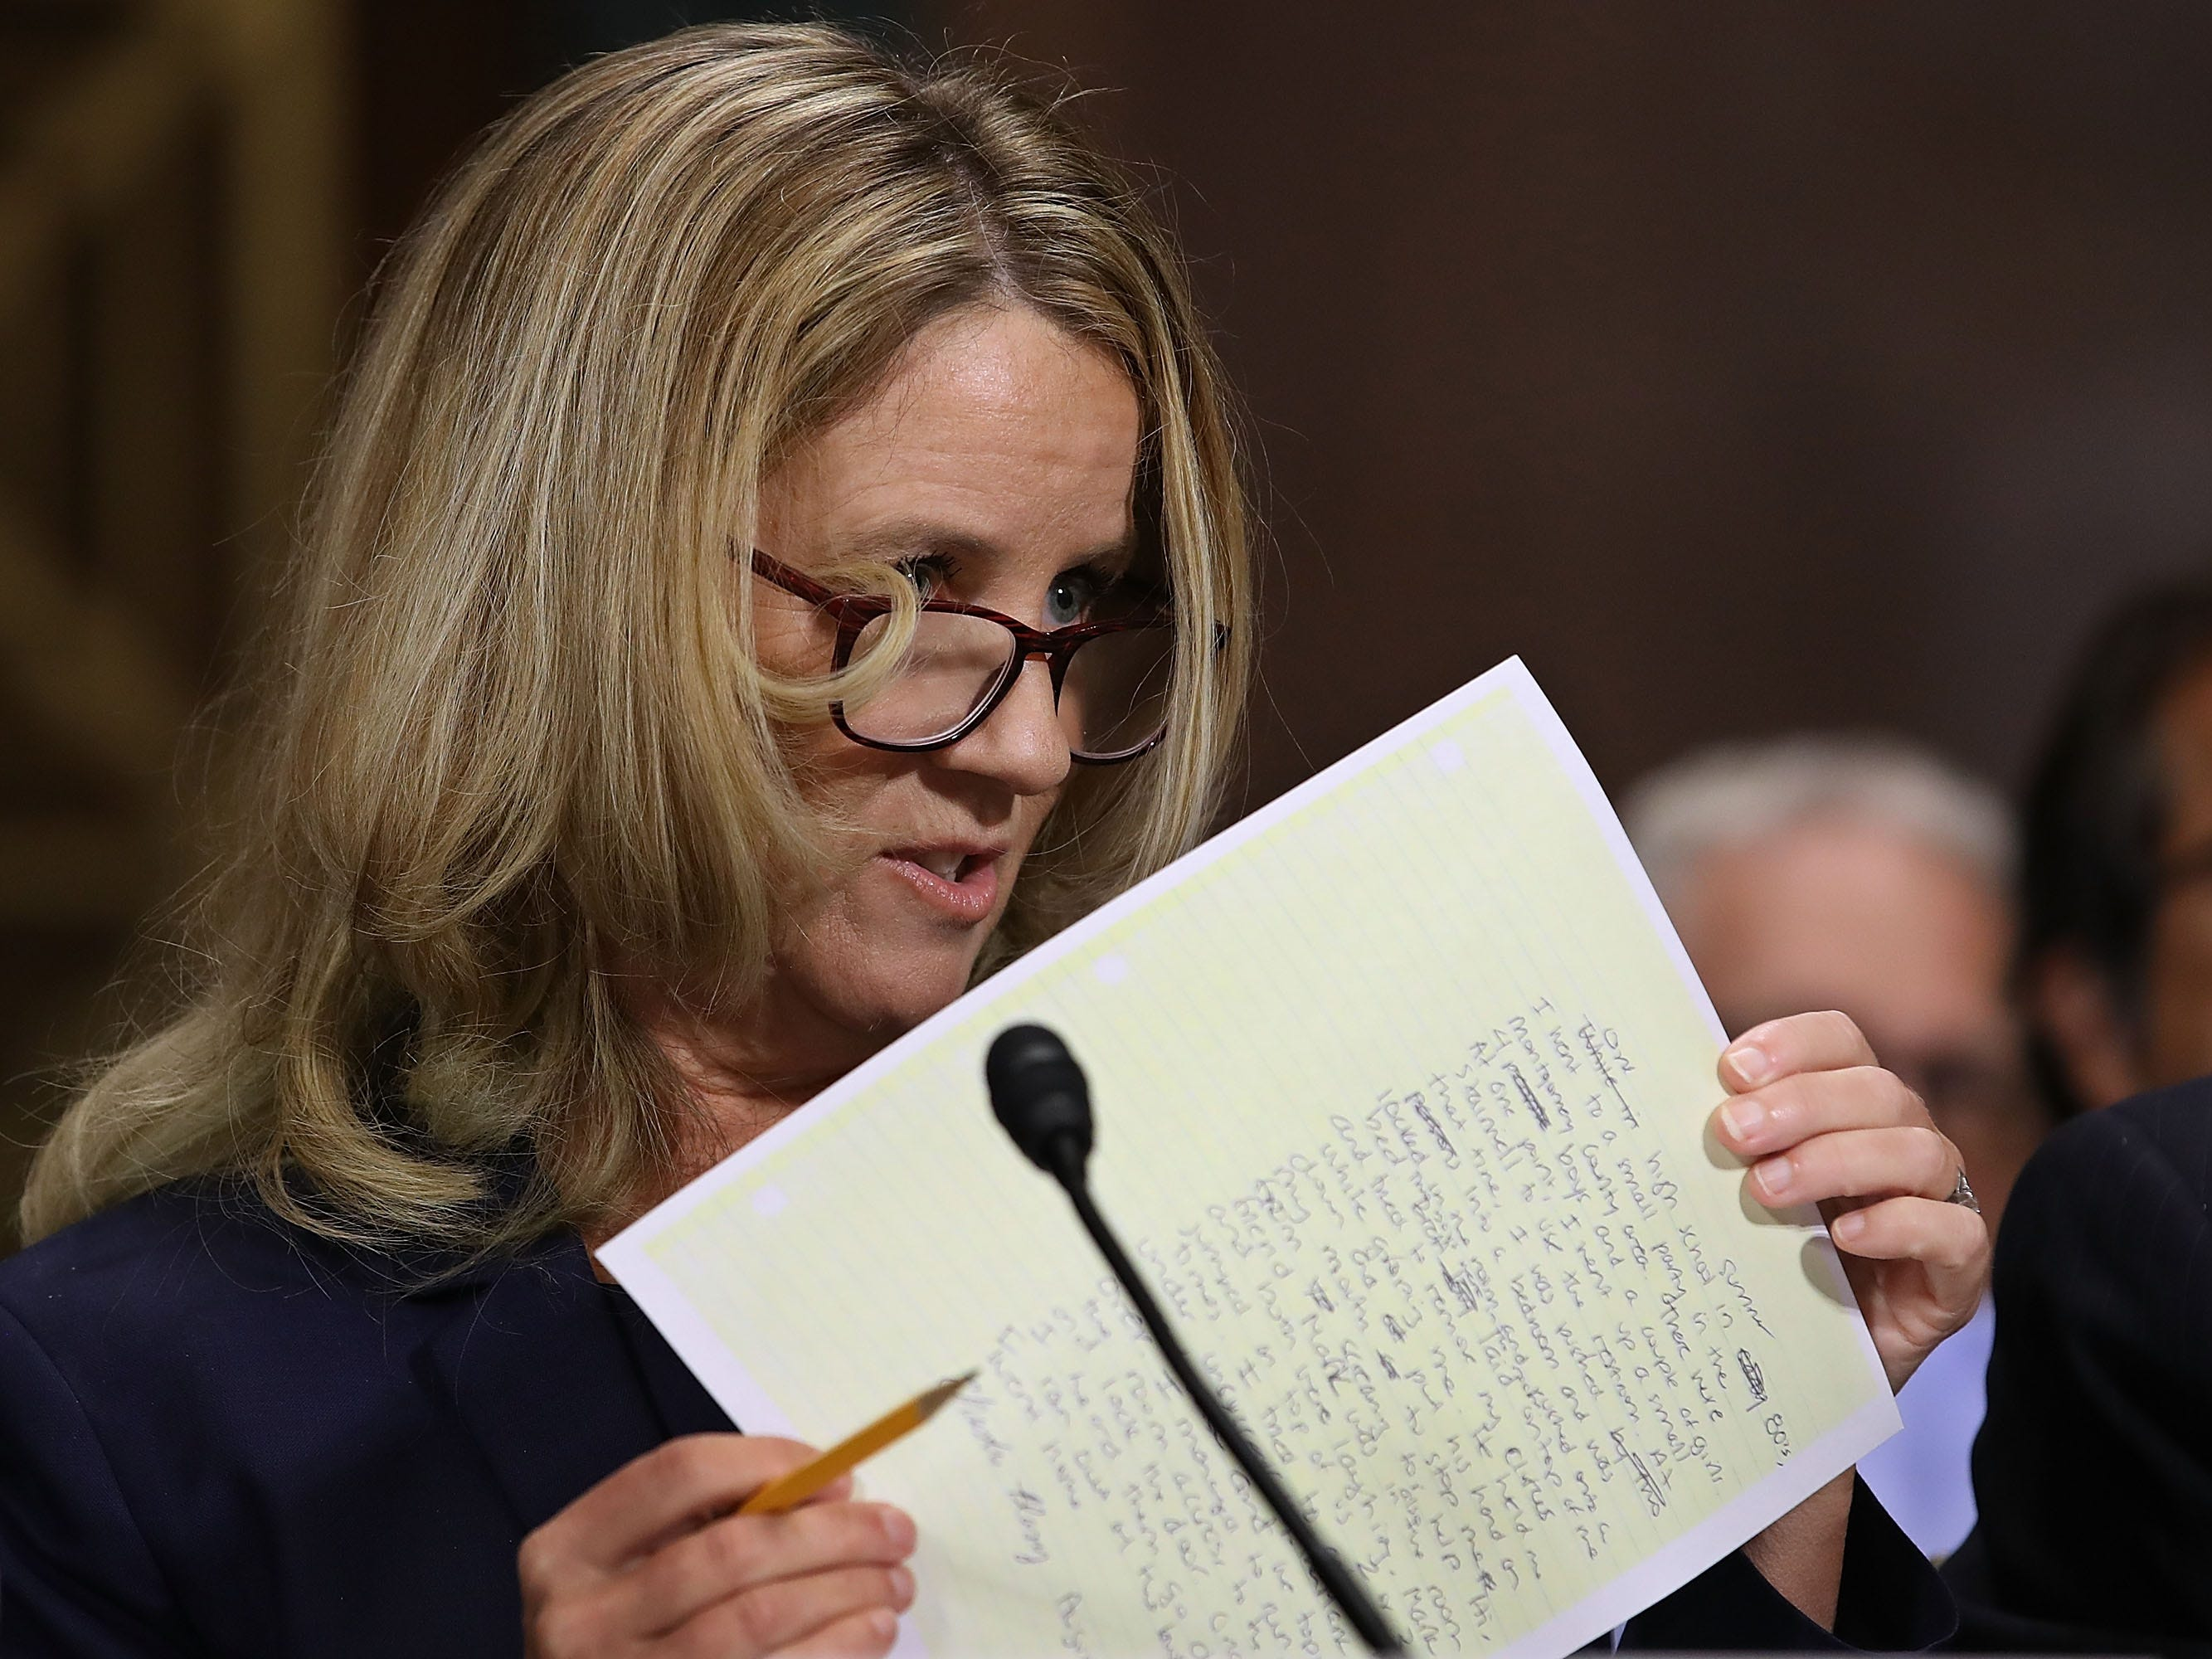 Christine Blasey Ford holds notes as she testifies before the Senate Judiciary Committee in the Dirksen Senate Office Building on Capitol Hill September 27, 2018 in Washington, DC. (Photo by Win McNamee / POOL / Getty Images)WIN MCNAMEE/AFP/Getty Images ORG XMIT: 775234142 ORIG FILE ID: AFP_19I54A